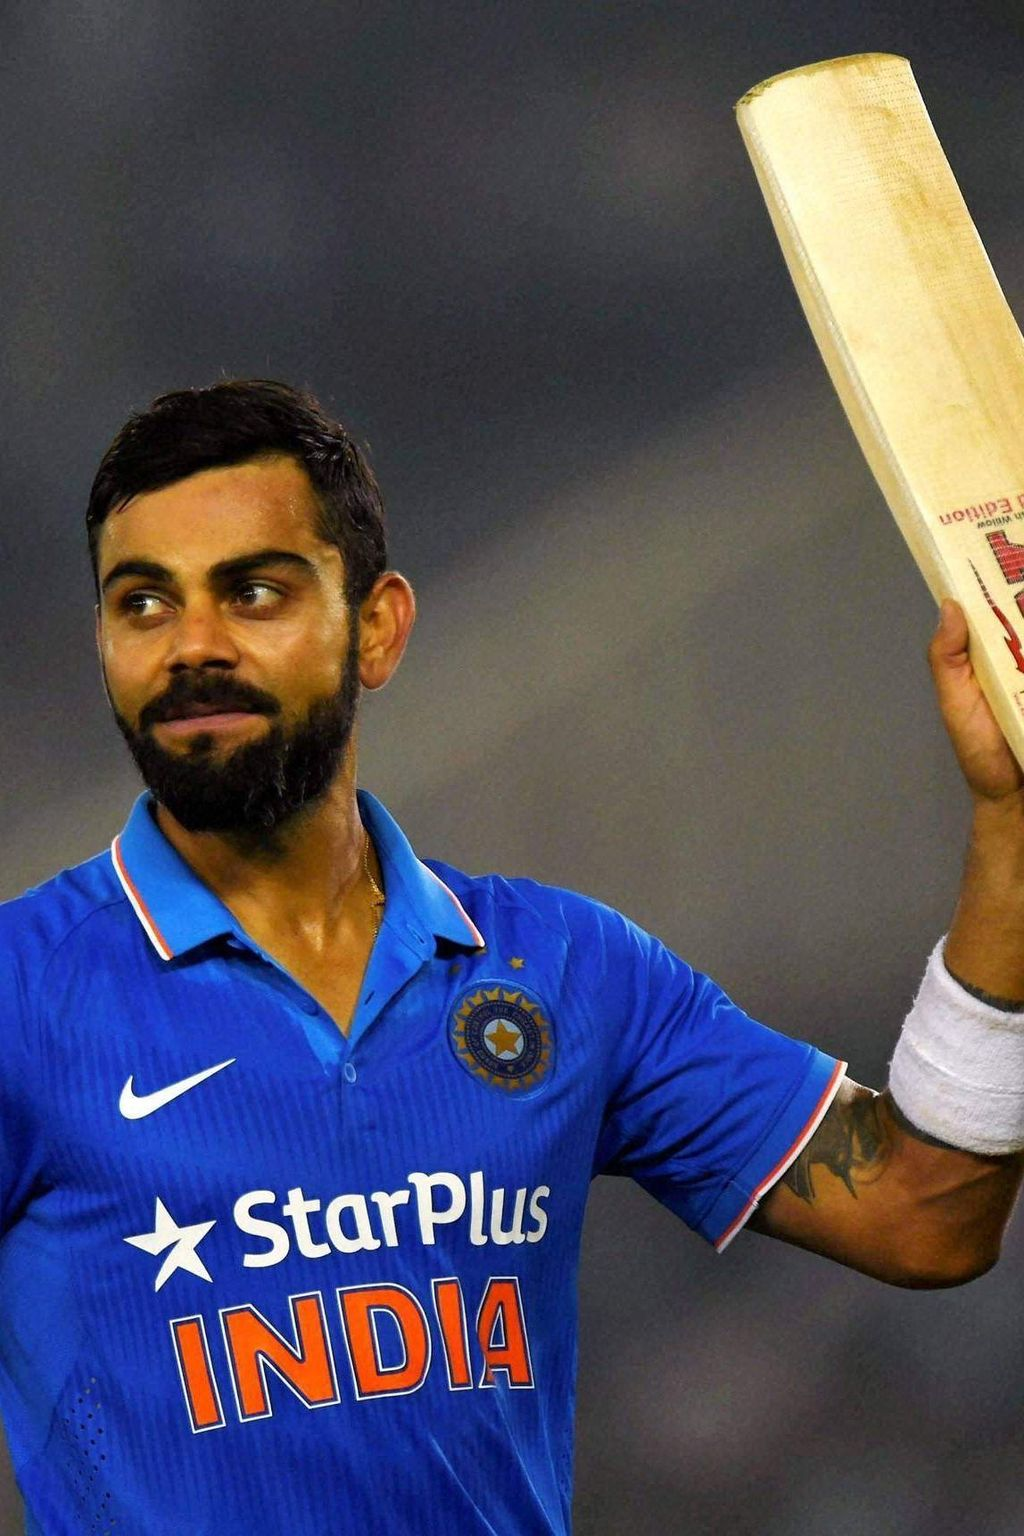 Major Milestone Awaits Virat Kohli As He Is Set To Play His 200th ODI For Team India